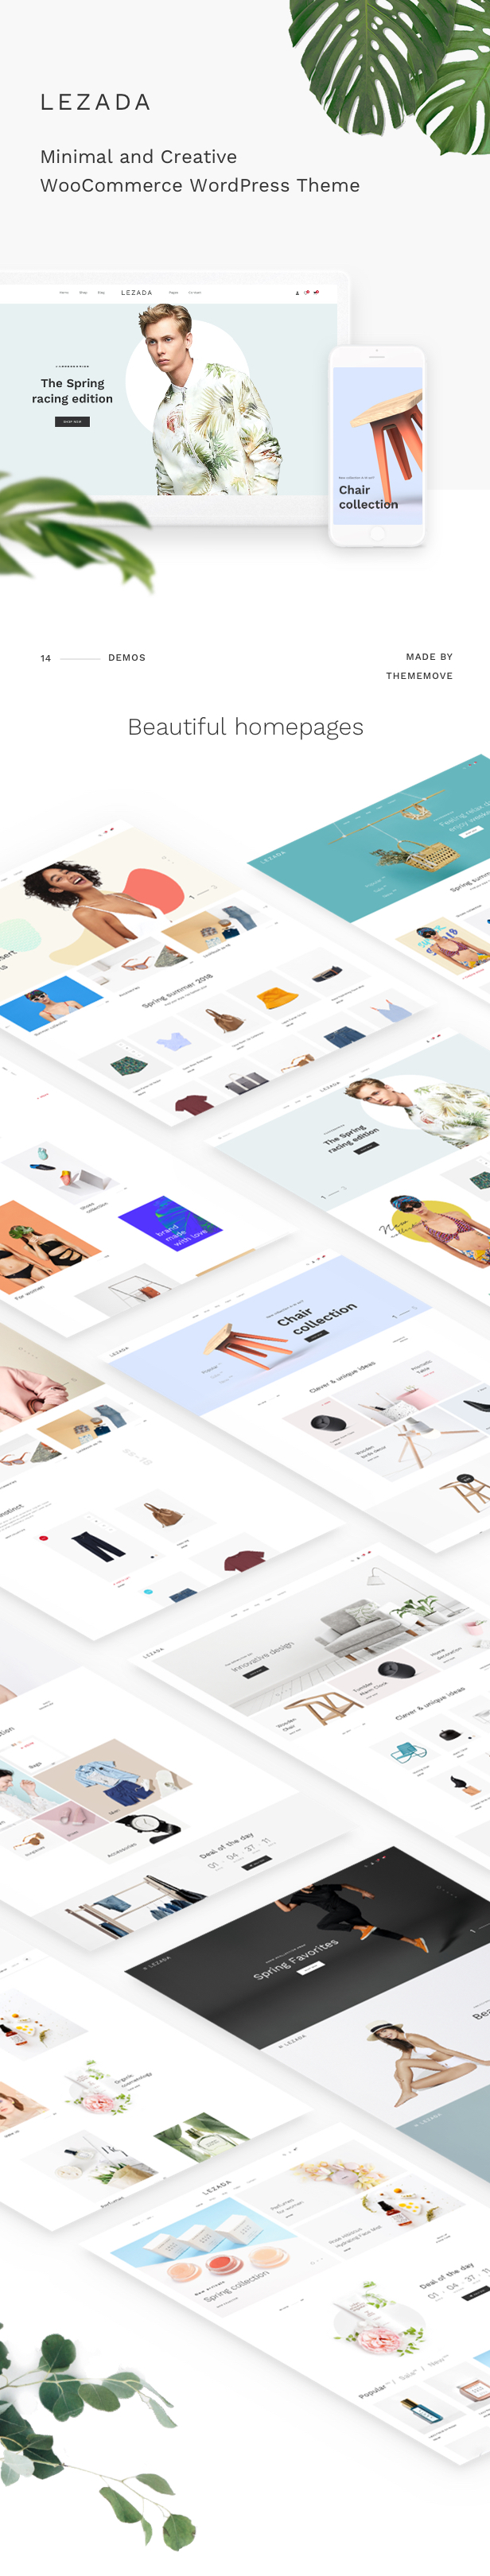 Fashion WooCommerce WordPress Theme - beautifully crafted Homepages